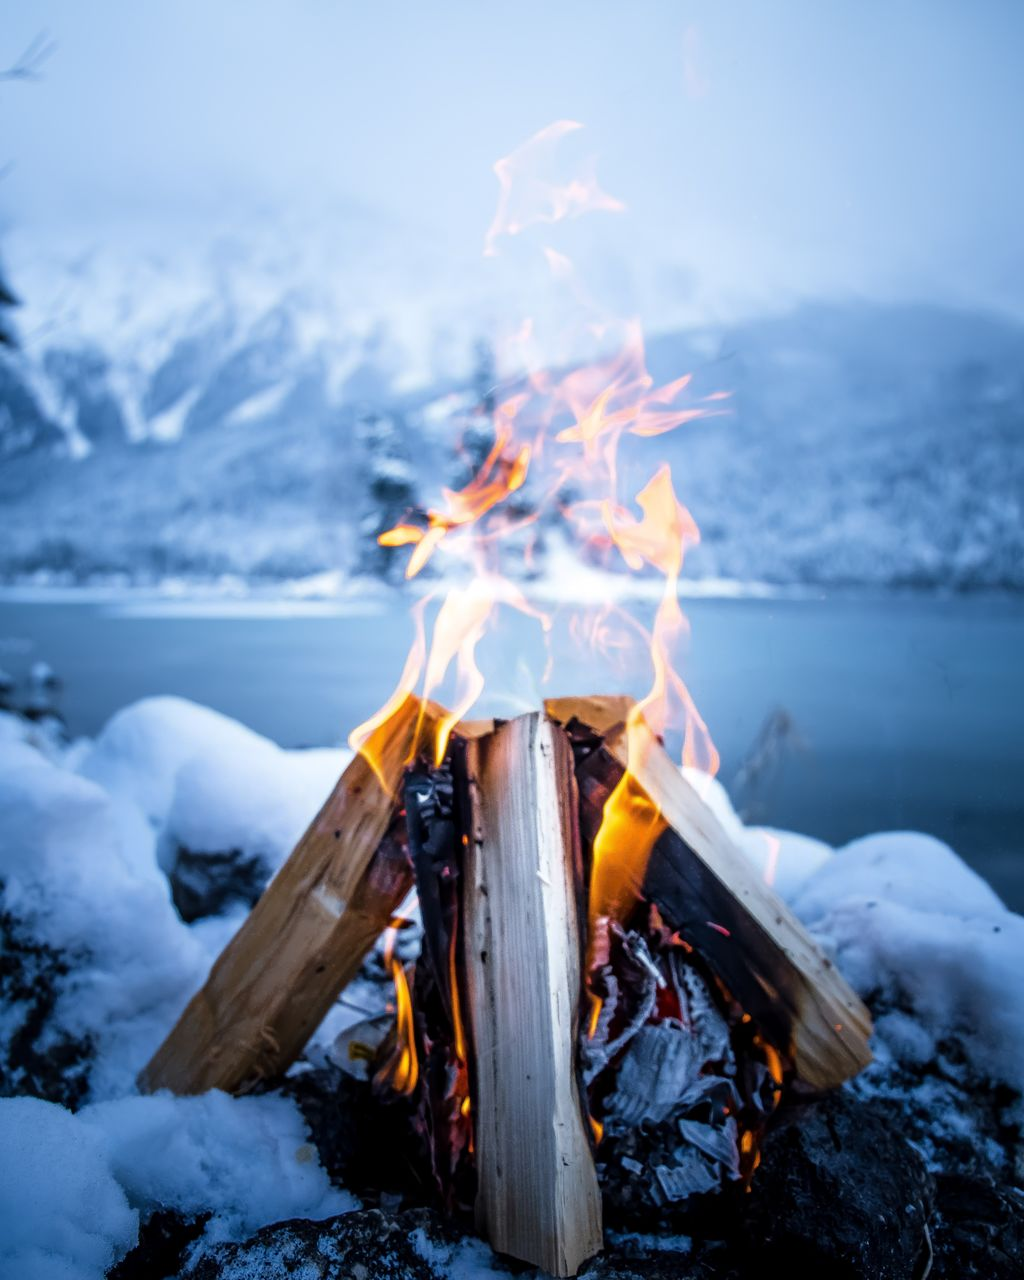 Close-Up Of Bonfire On Snow By Lake Against Sky